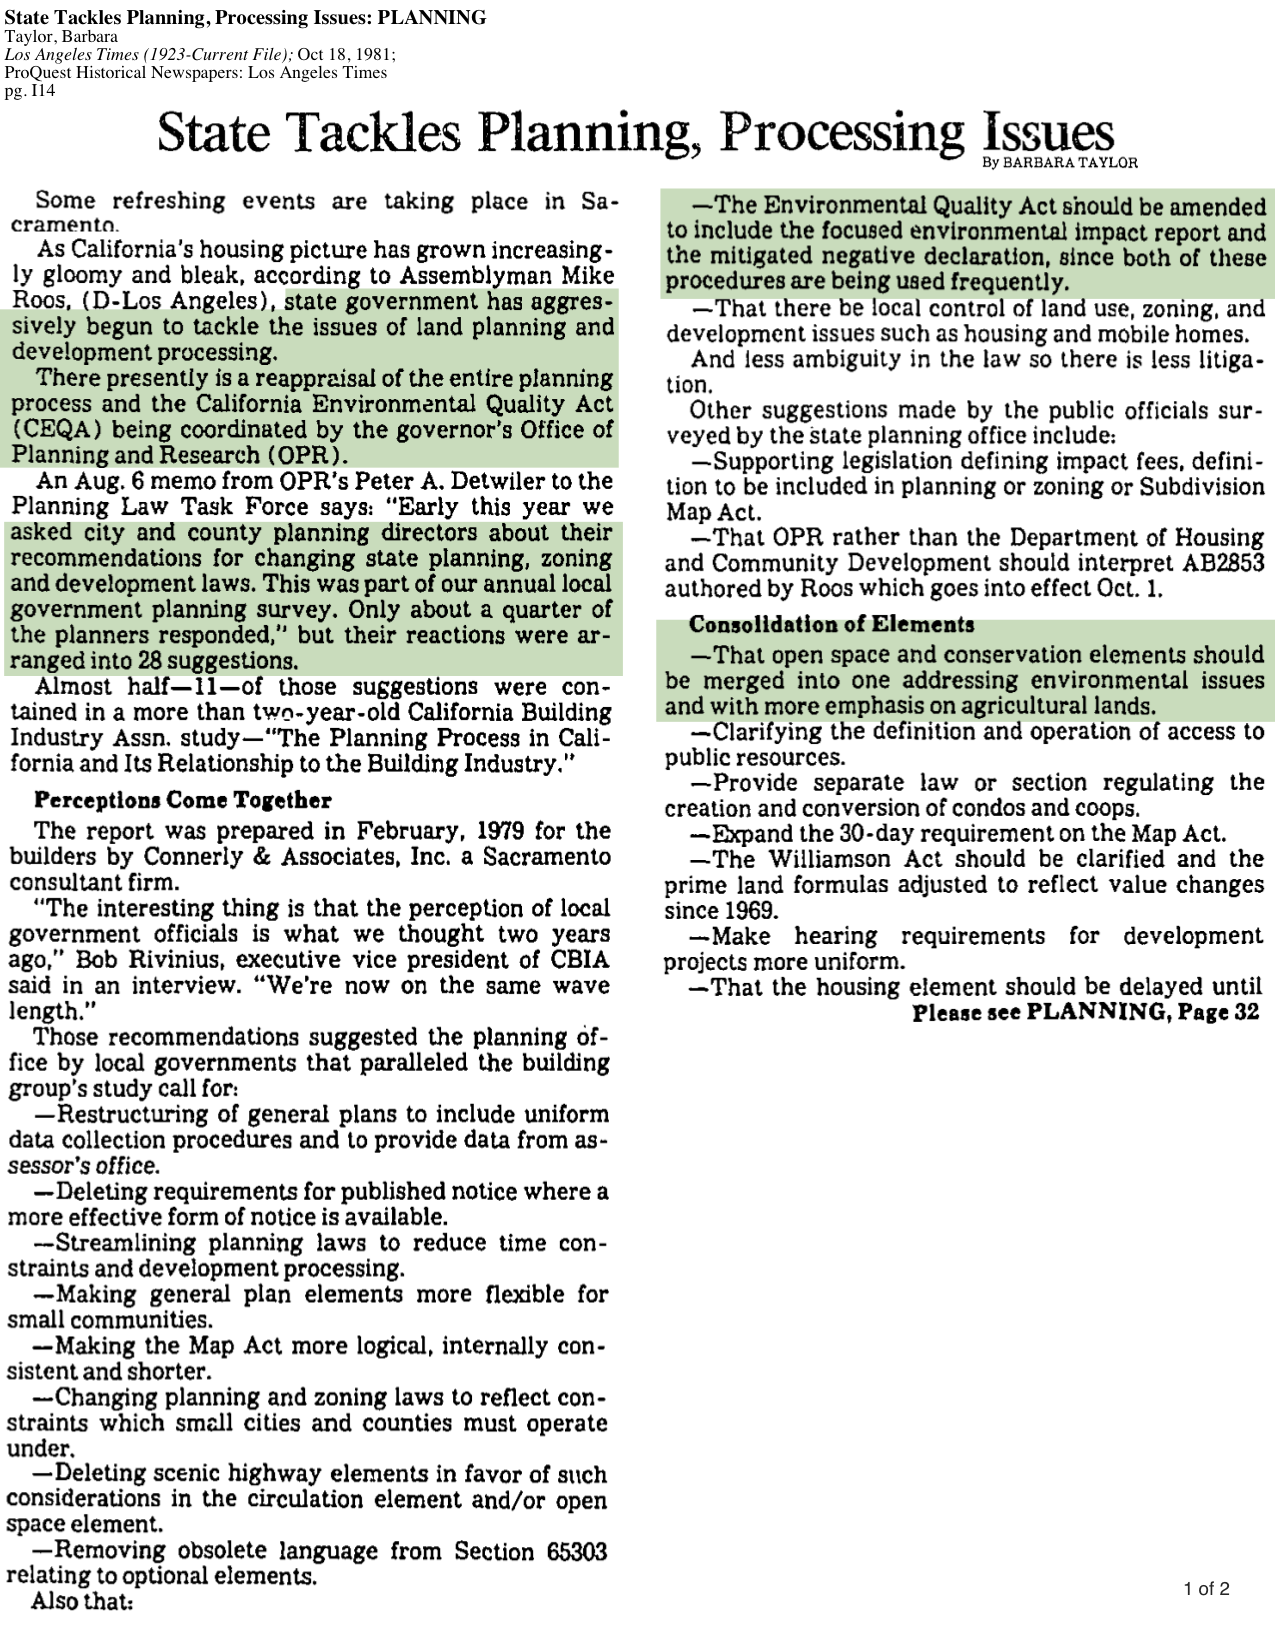 1981-Tackling Planning And Development